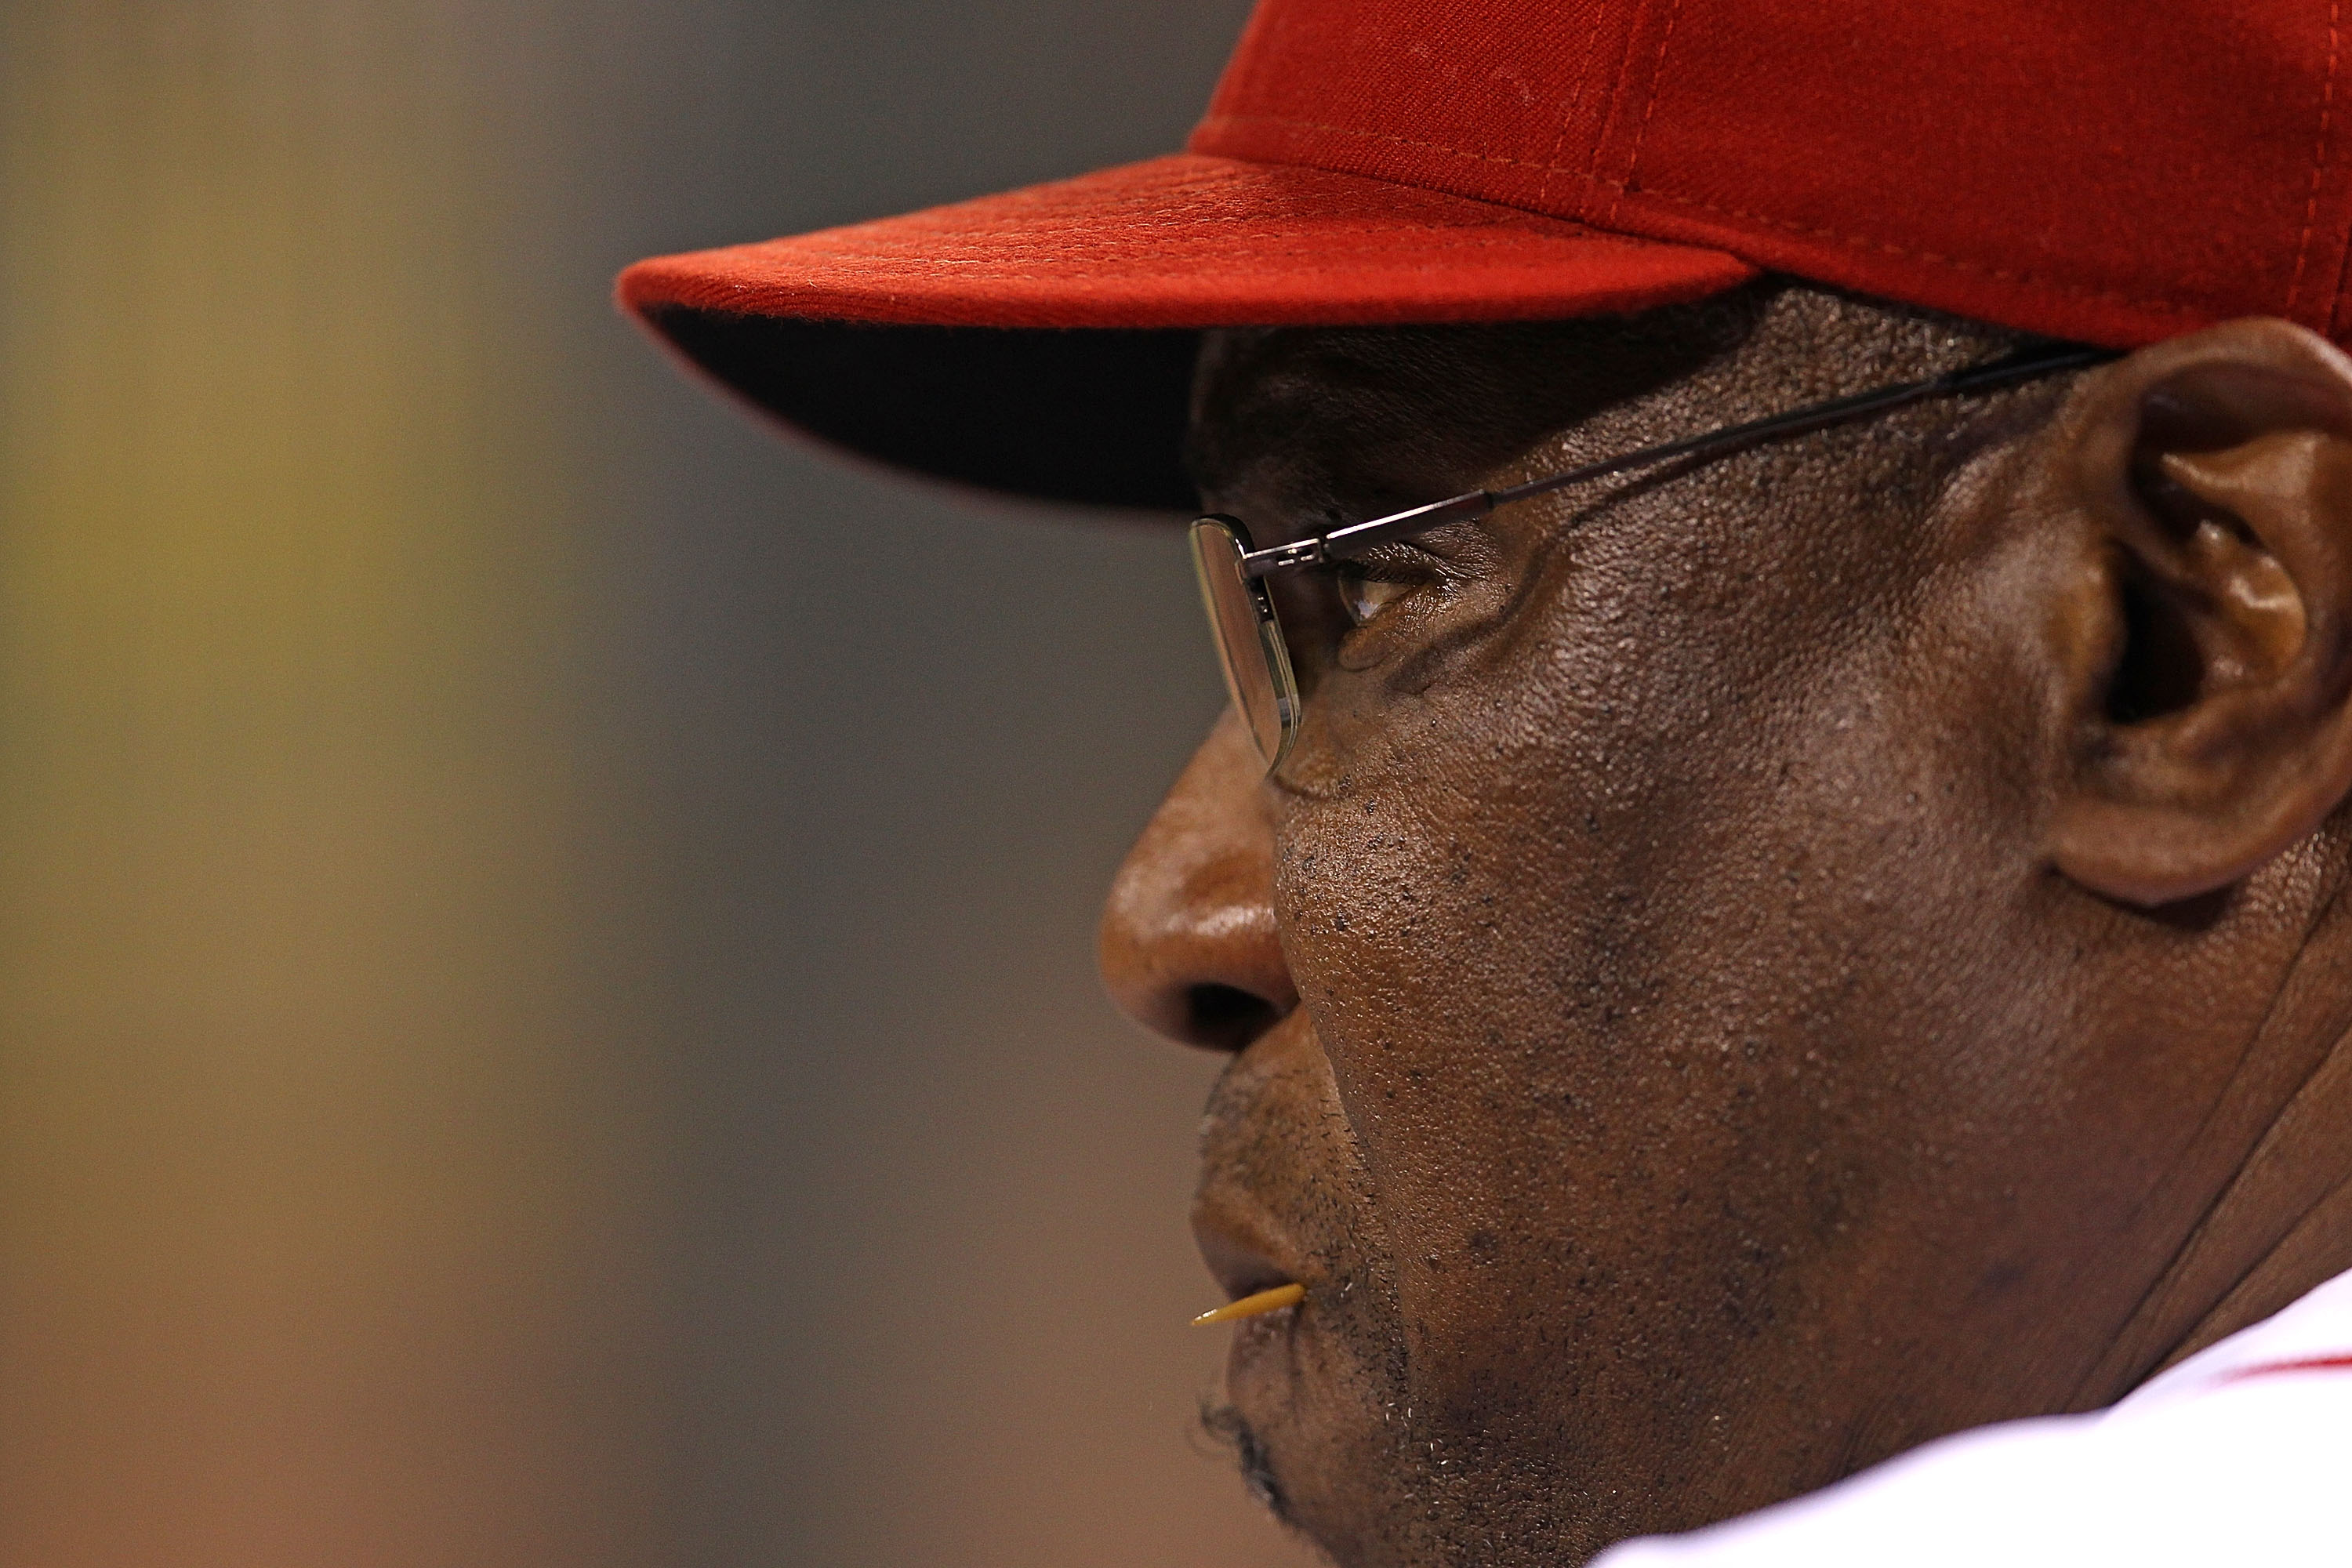 CINCINNATTI - OCTOBER 10: Manager Dusty Baker #12 of the Cincinnati Reds watches as his team takes on the Philadelphia Phillies during game 3 of the NLDS at Great American Ball Park on October 10, 2010 in Cincinnati, Ohio. The Phillies defeated the Reds 2